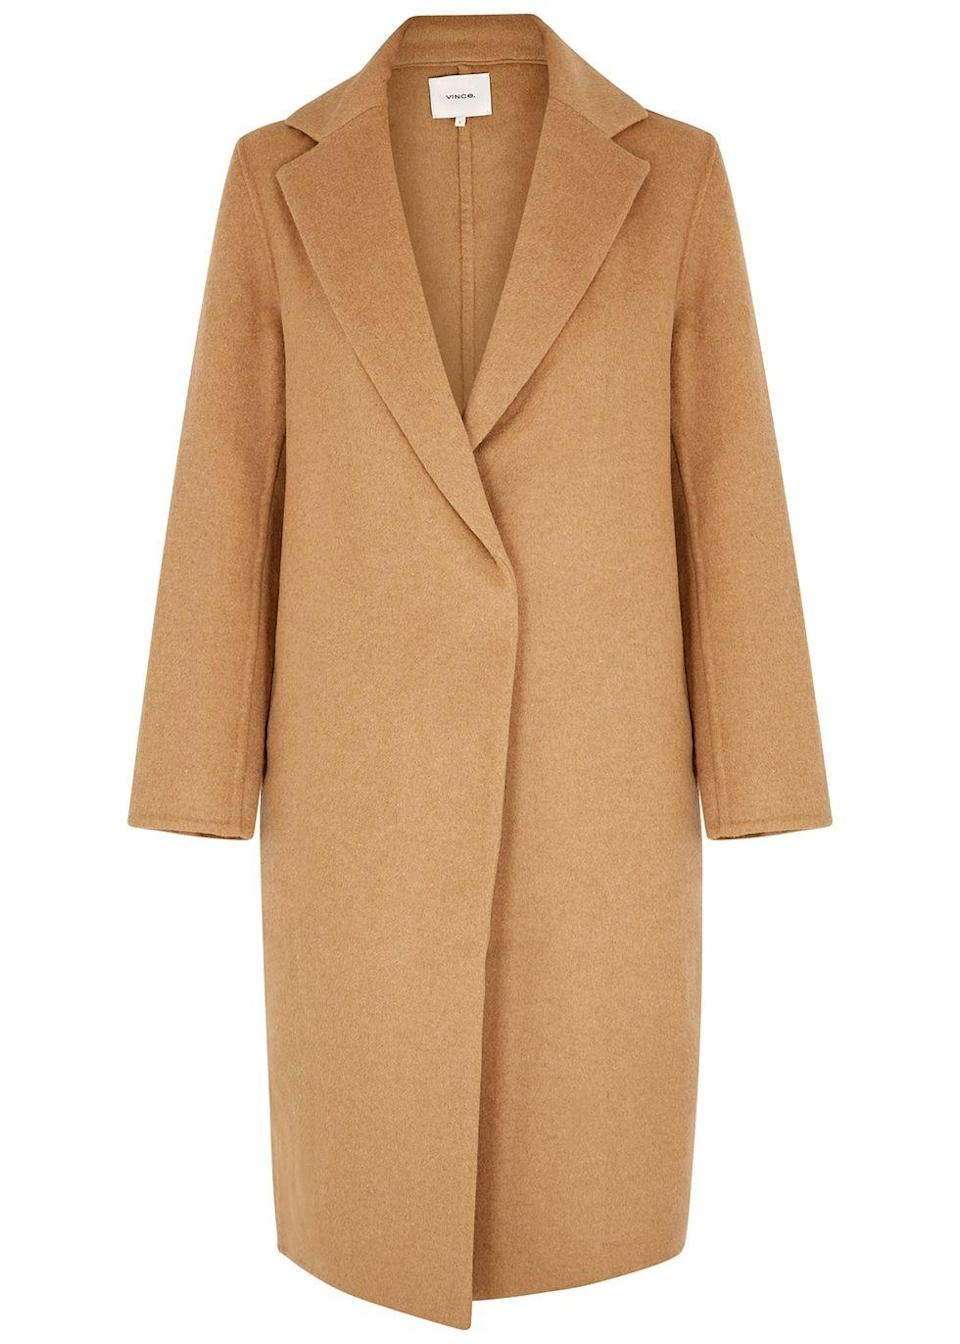 """<p><a class=""""link rapid-noclick-resp"""" href=""""https://www.harveynichols.com/brand/vince/457537-classic-camel-wool-blend-coat/p4126167/"""" rel=""""nofollow noopener"""" target=""""_blank"""" data-ylk=""""slk:SHOP NOW"""">SHOP NOW</a></p><p>Elegant as they are, long coats are undeniably impractical at times (especially since so many of us have swapped public transport for cycling these days). Vince has modernised the classic Chesterfield with an asymmetric fastening and minimal fastenings.</p><p>Classic Wool-blend Coat, £685, Vince</p>"""